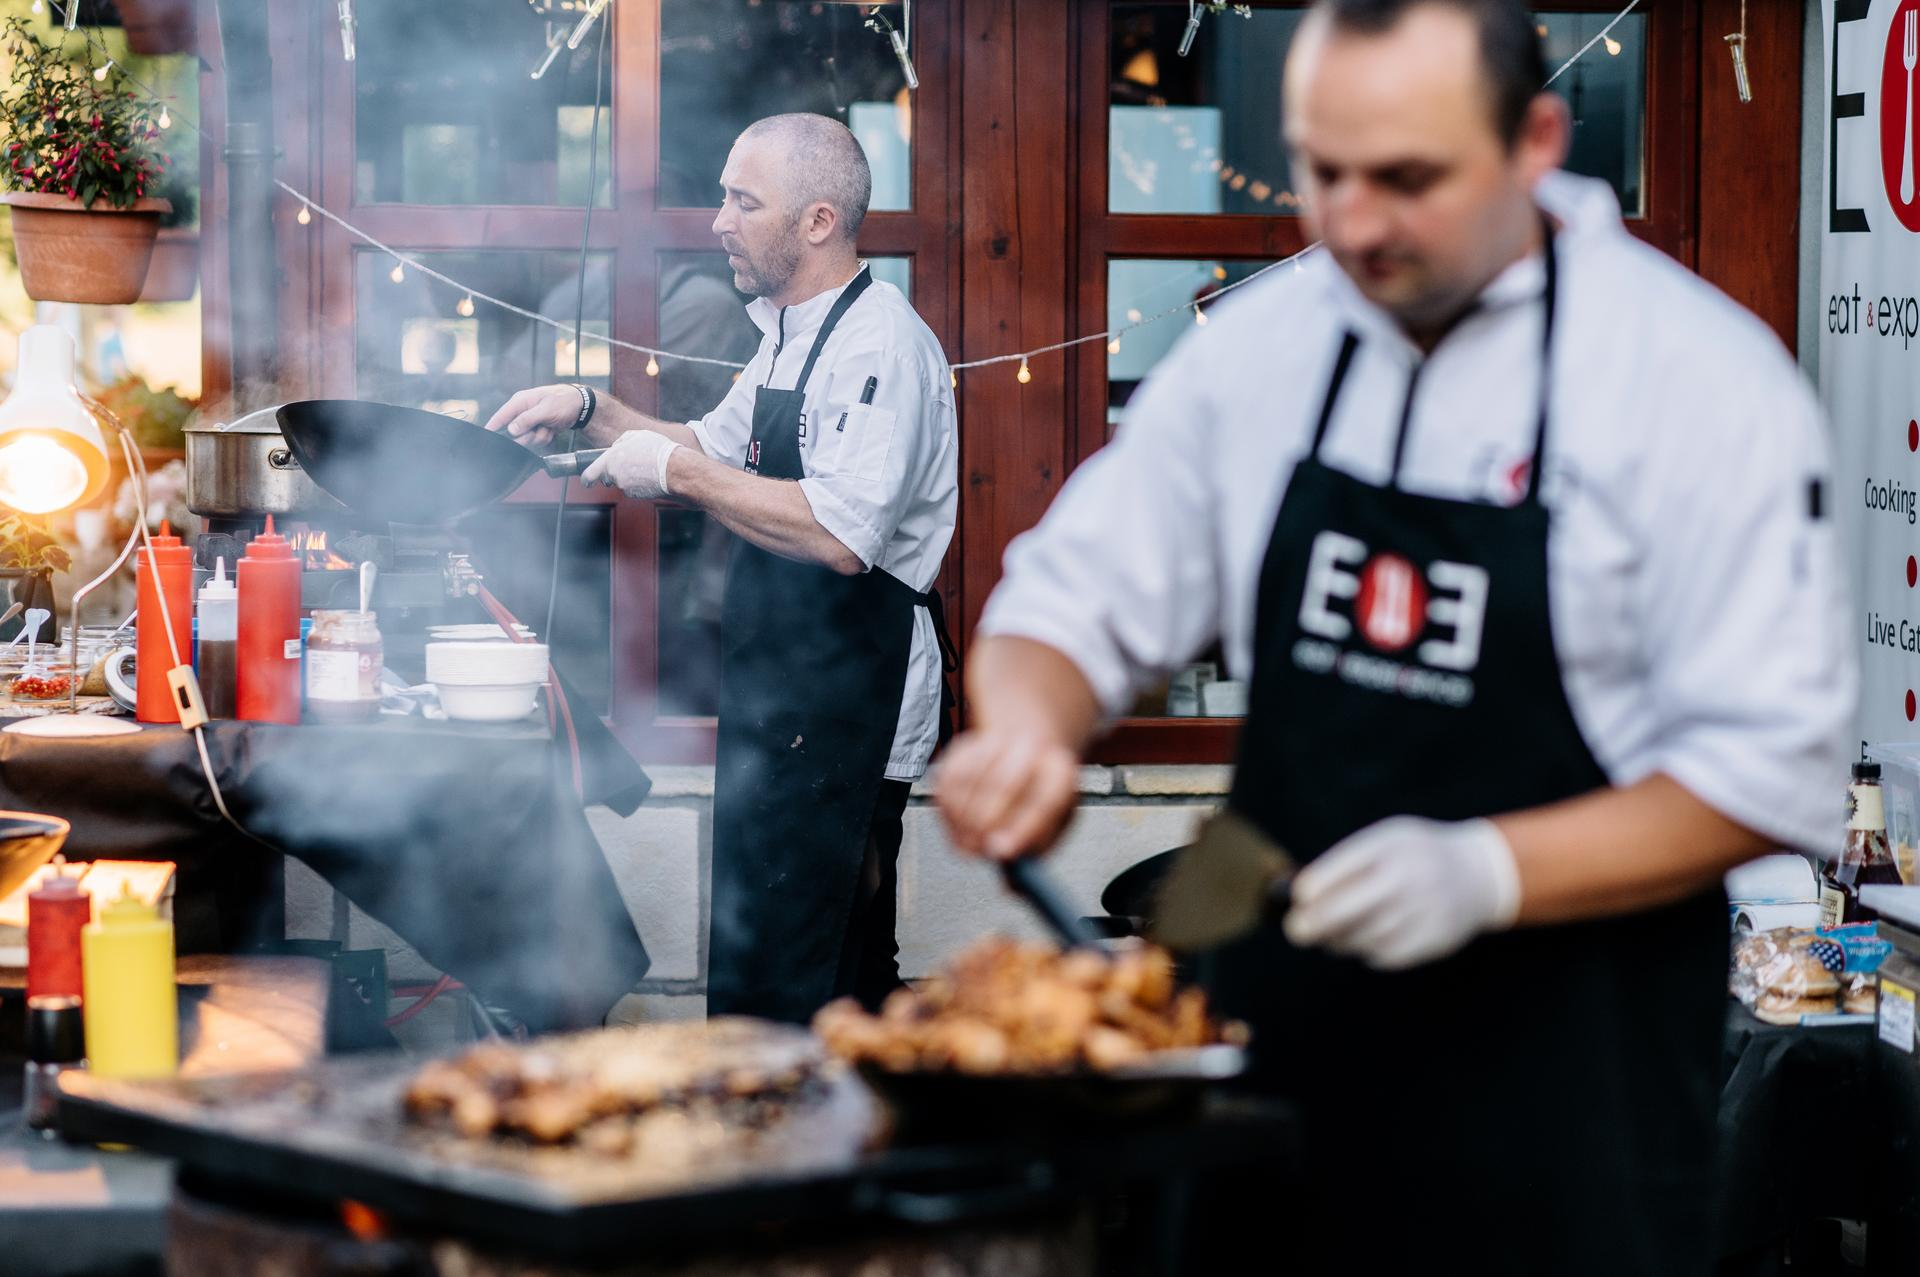 eatandexperiencecatering - Live cooking - asie/grill